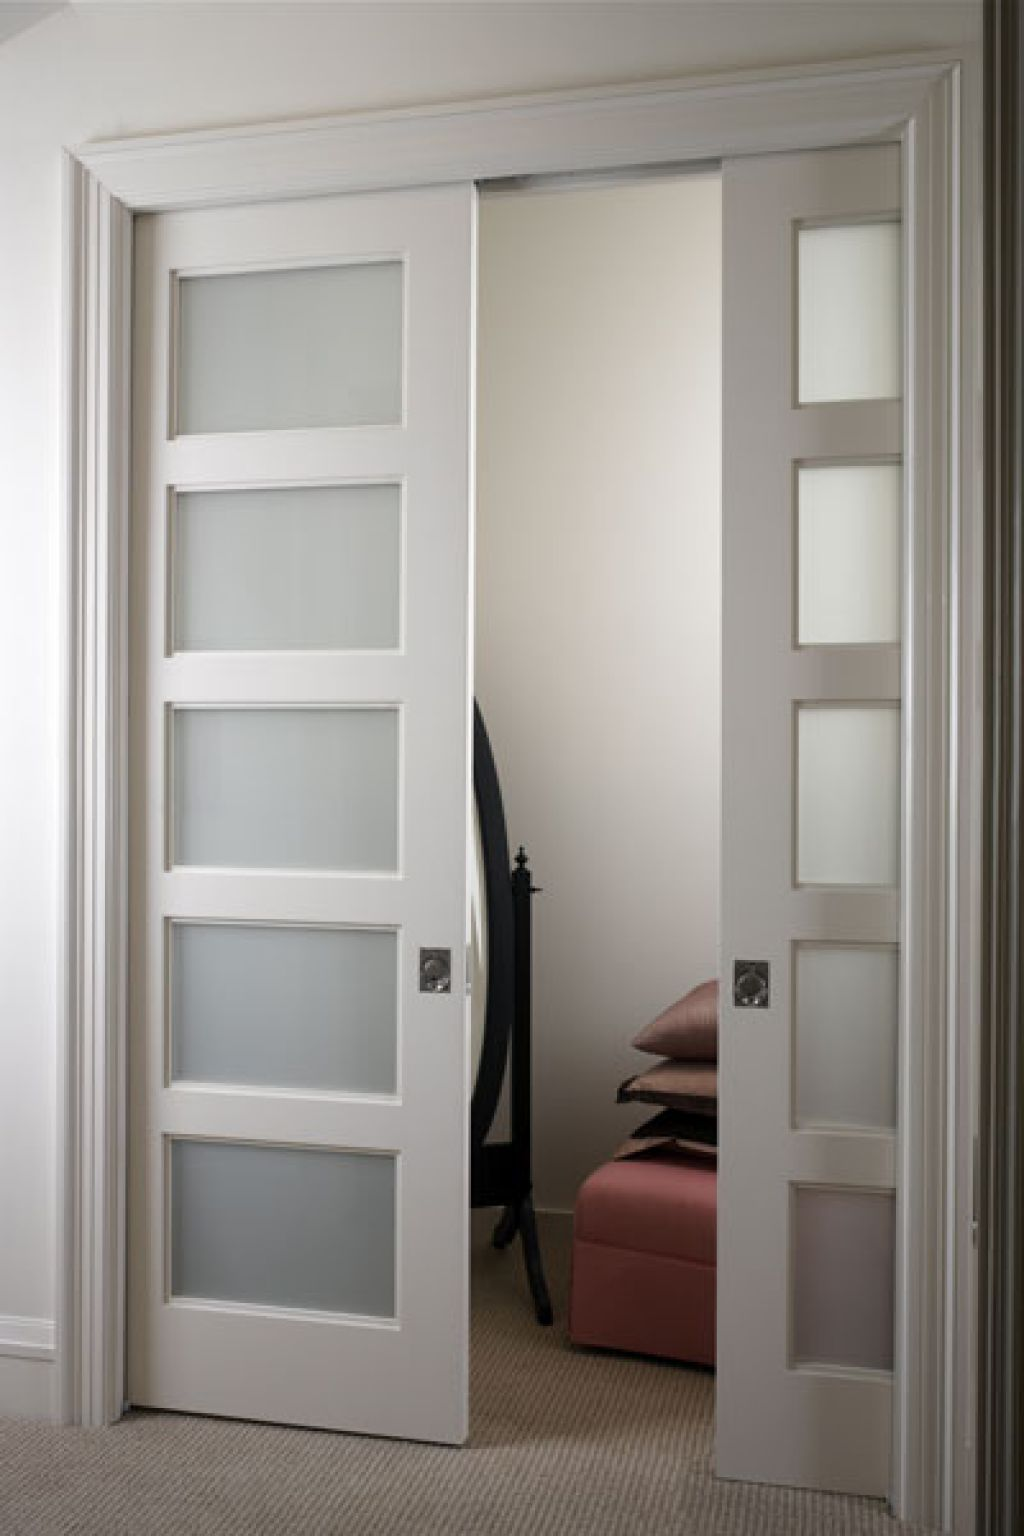 Example Of A Door With Frosted Glass Installed Into It Glass Pocket Doors Interior Pocket Doors Wood Doors Interior